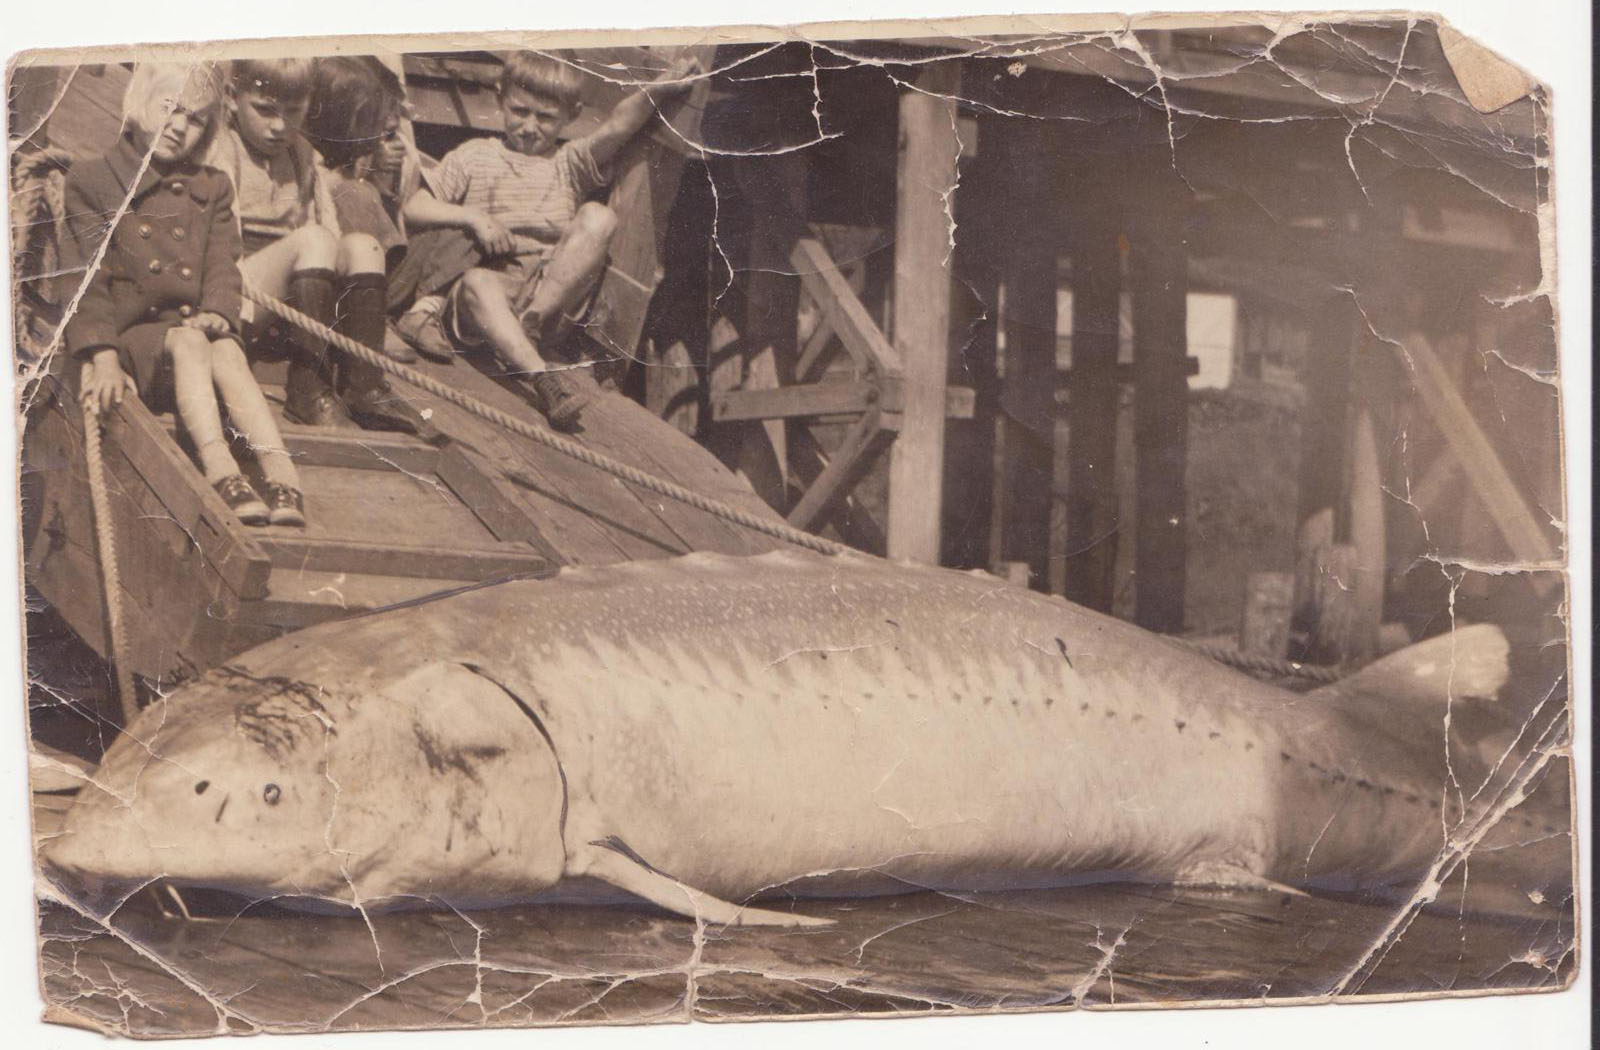 Whonnock History Notes: Giant sturgeon